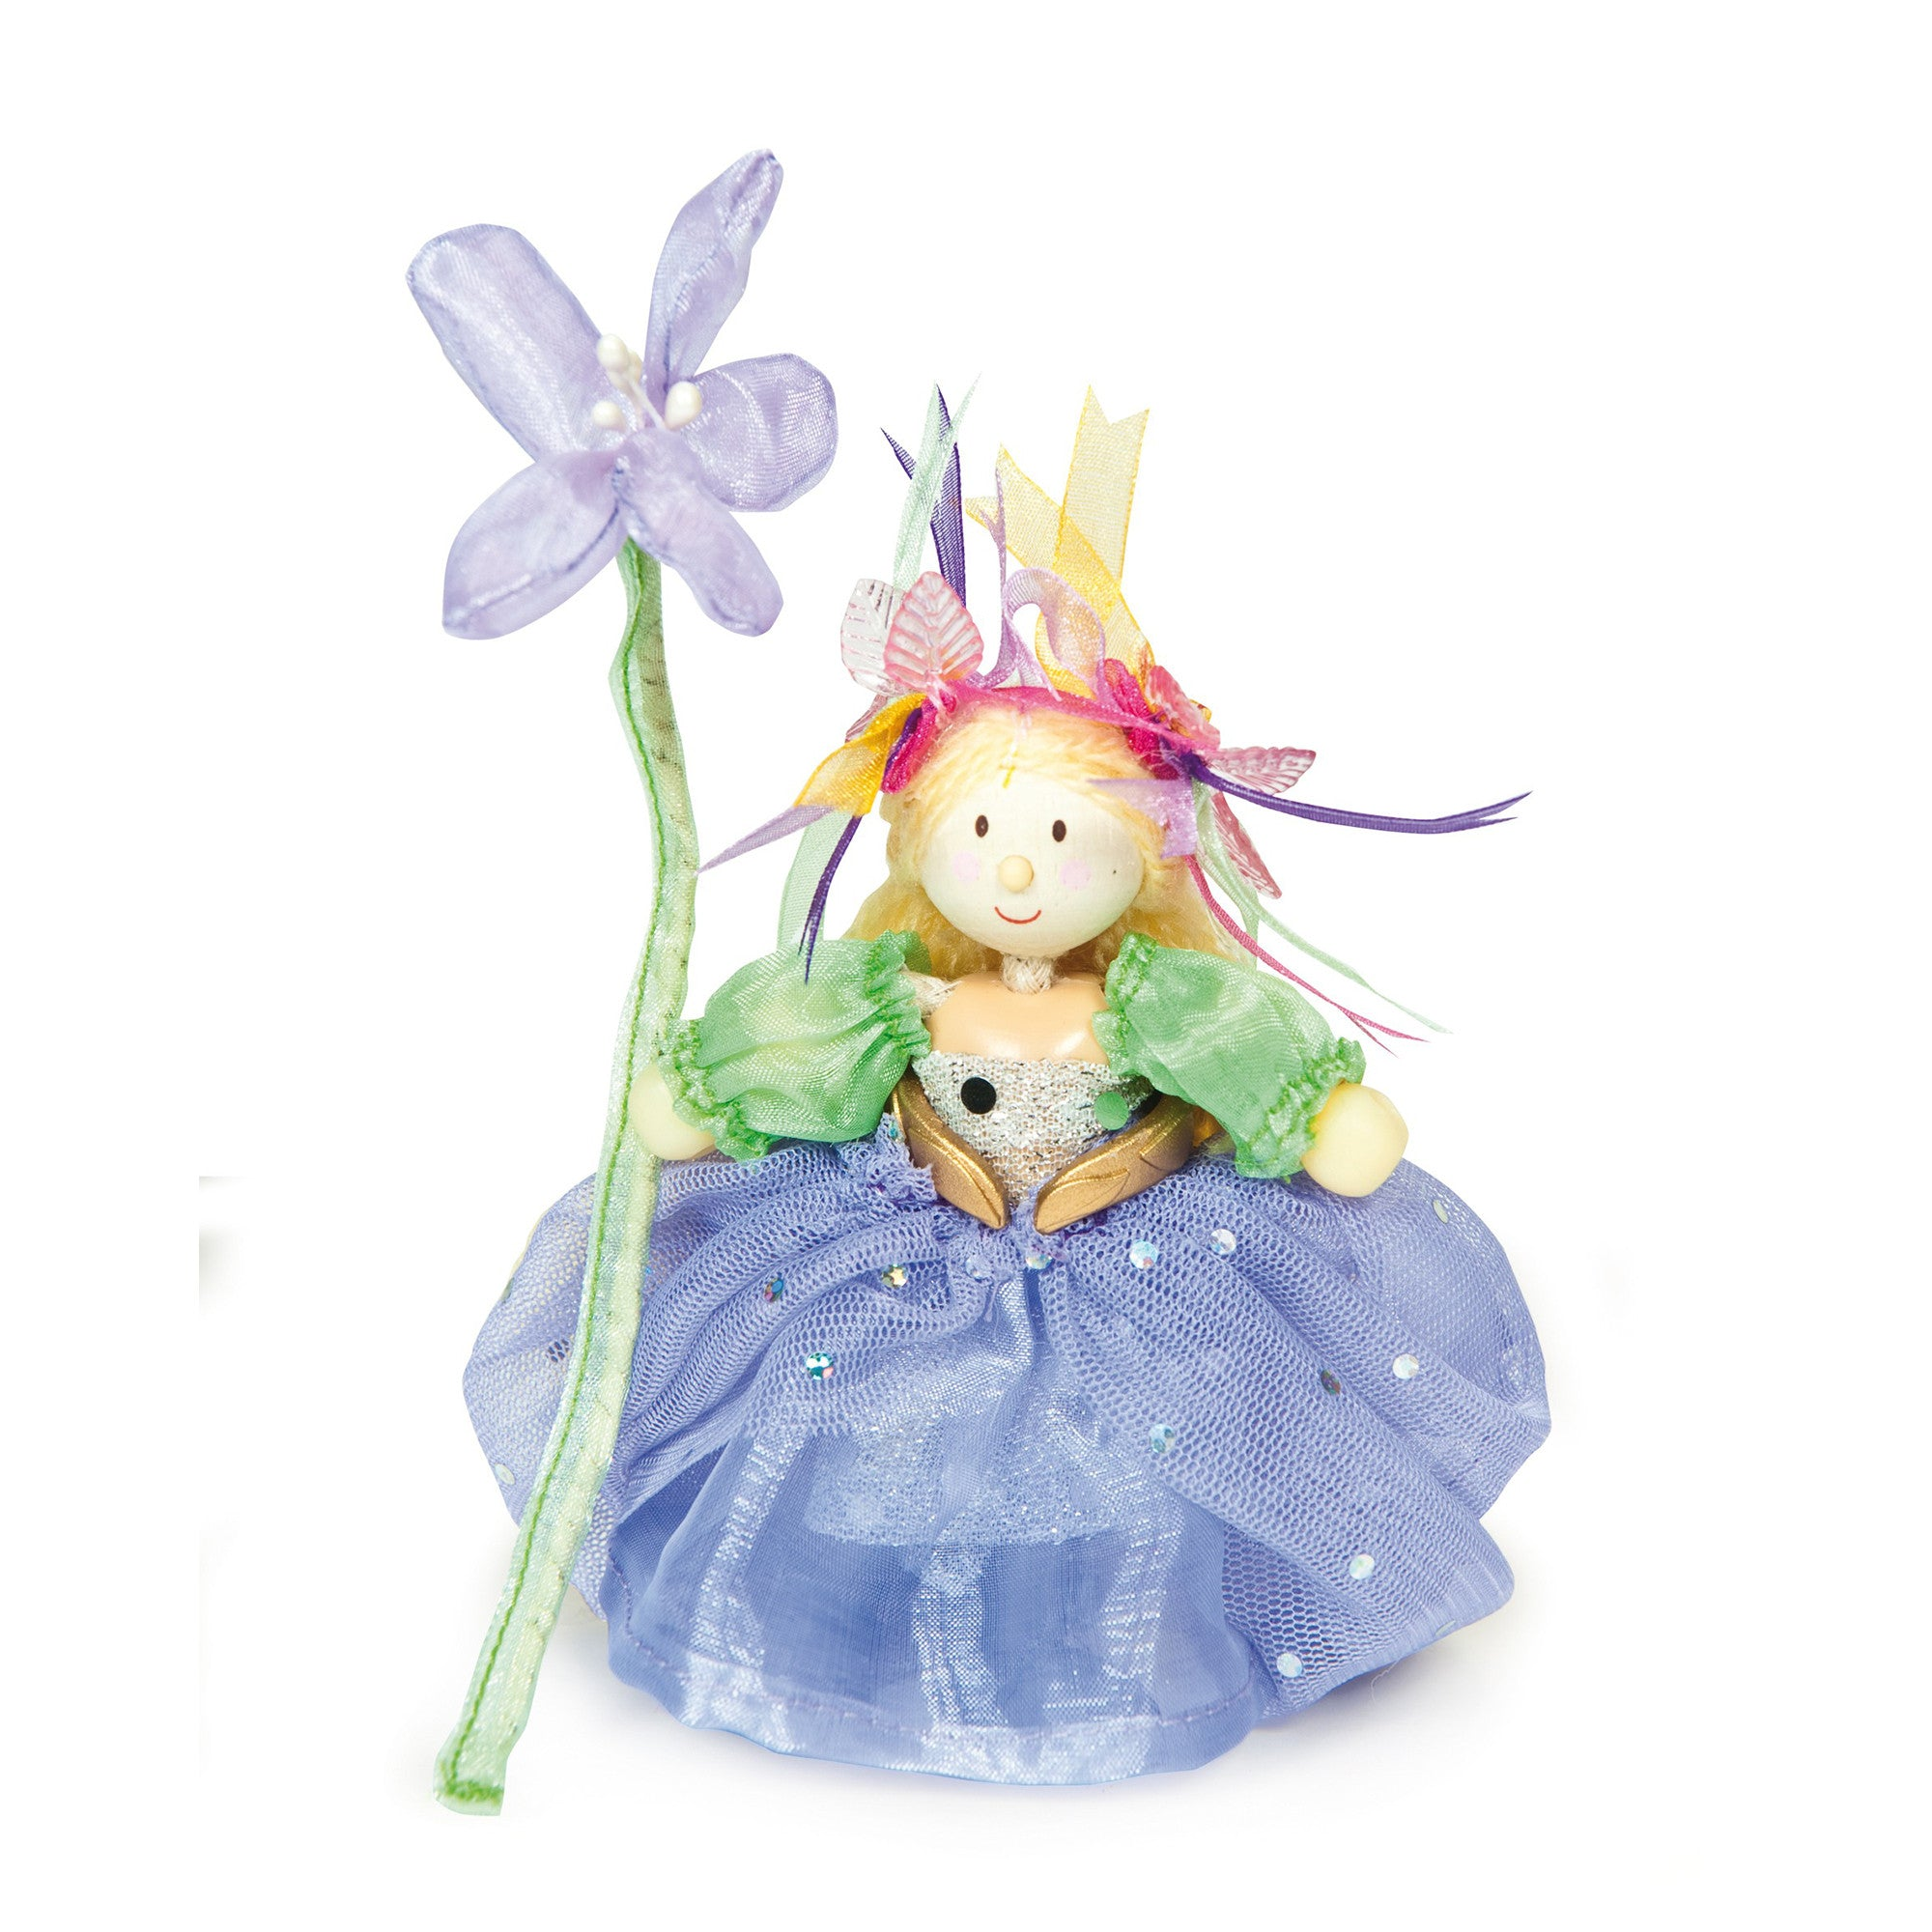 Budkins Le Toy Van Dolls, Playsets & Toy Figures at Little Earth Nest Eco Shop